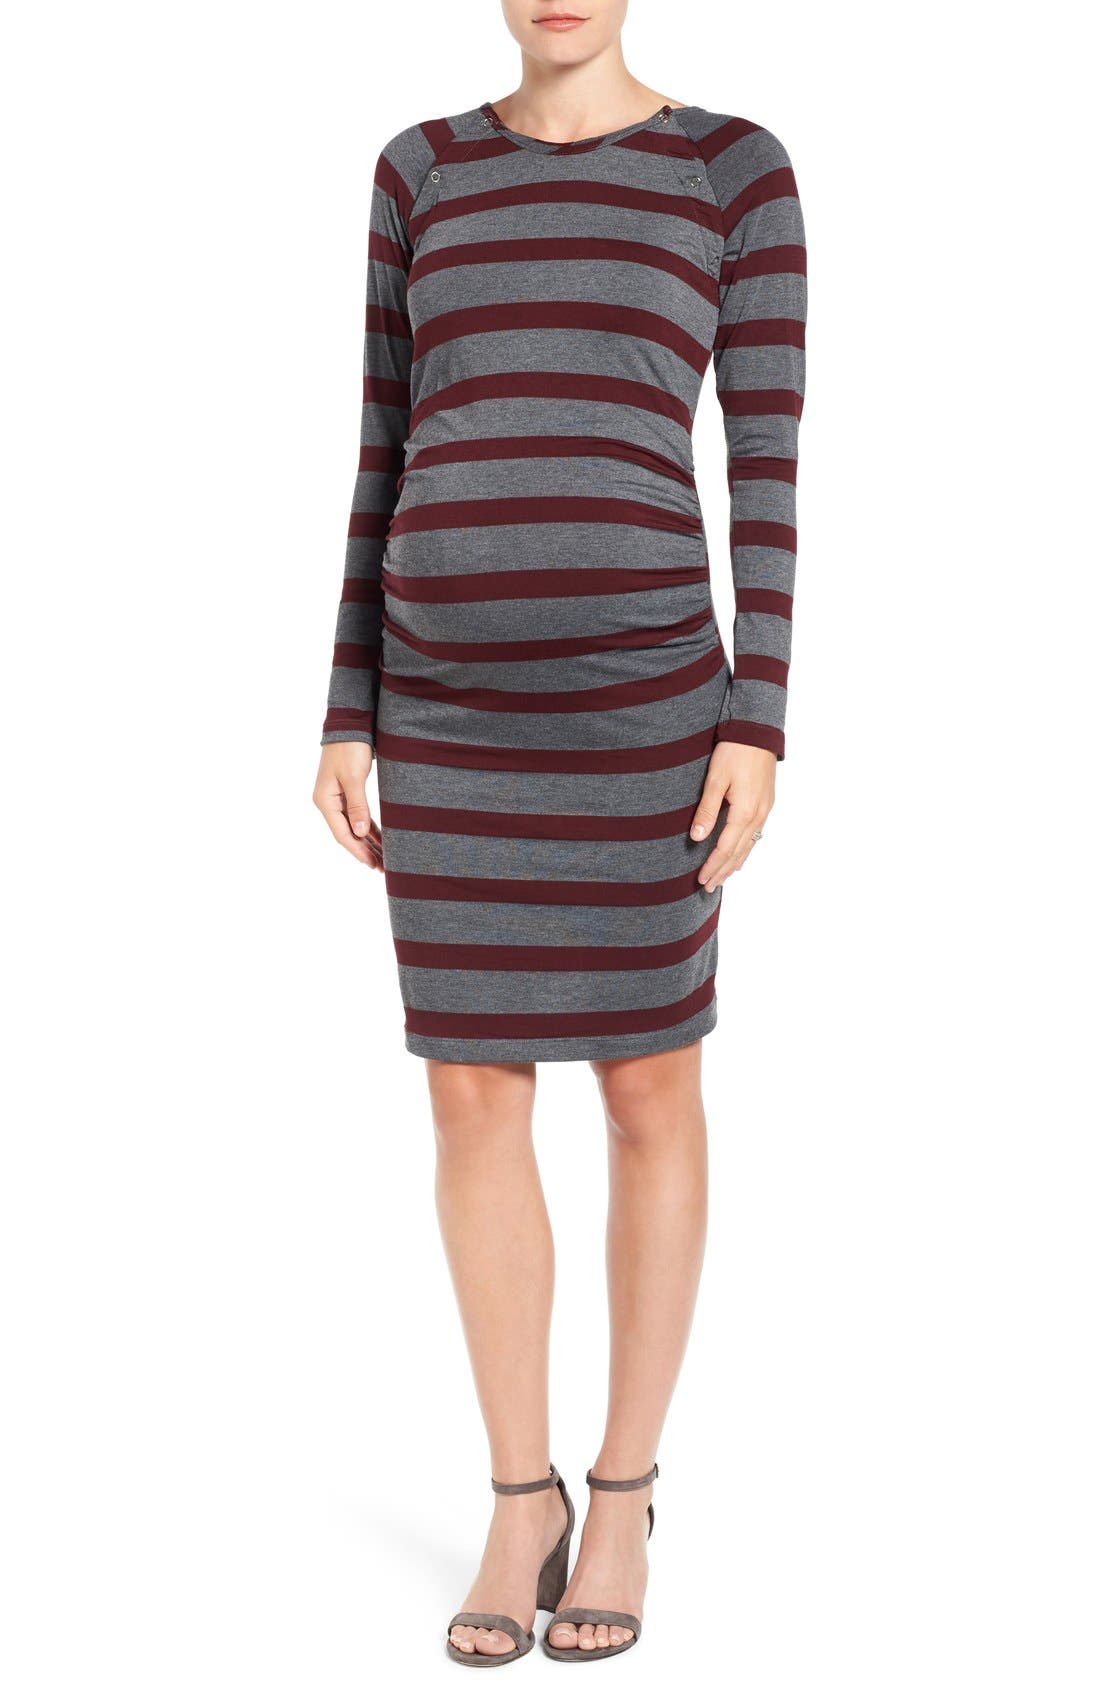 LAB40 'Alex' Ruched Maternity/Nursing Dress